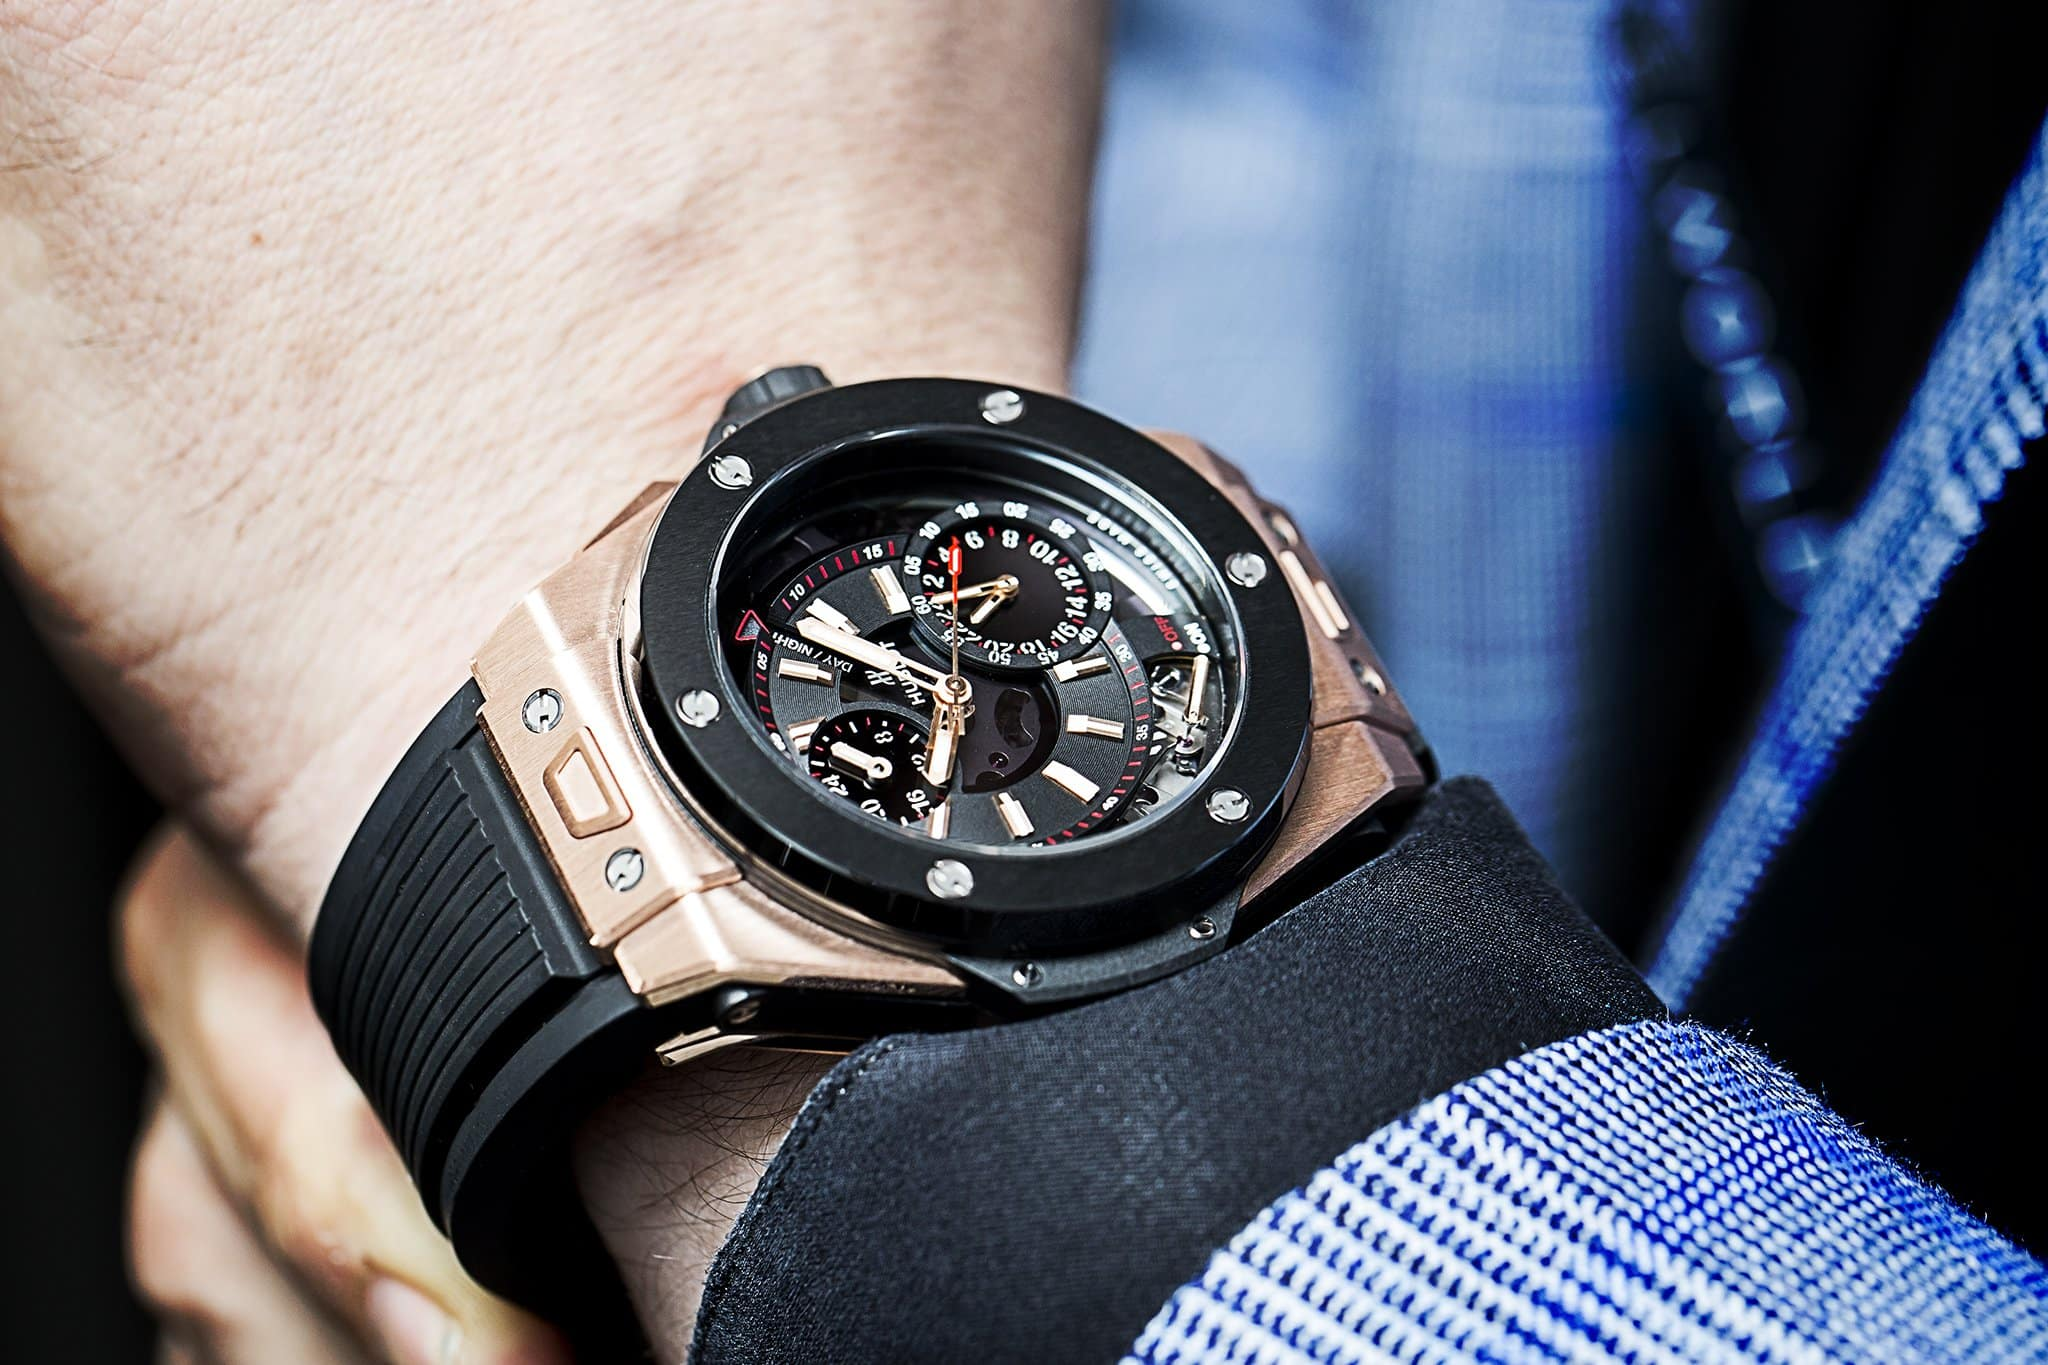 Hublot-Big-Bang-Alarm-Repeater-Watch-in-King-Gold-On-Wrist1